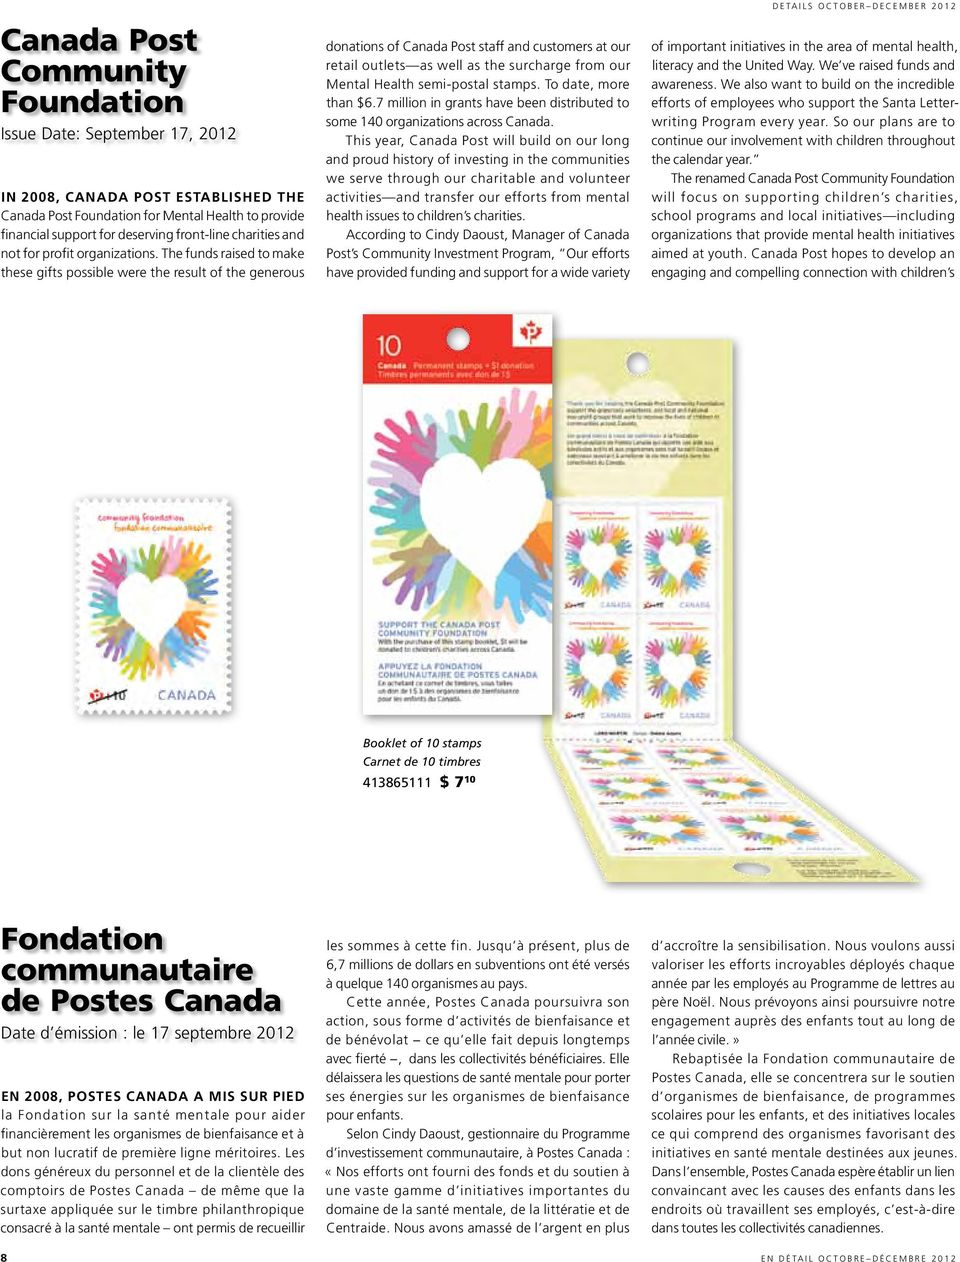 The funds raised to make these gifts possible were the result of the generous donations of Canada Post staff and customers at our retail outlets as well as the surcharge from our Mental Health